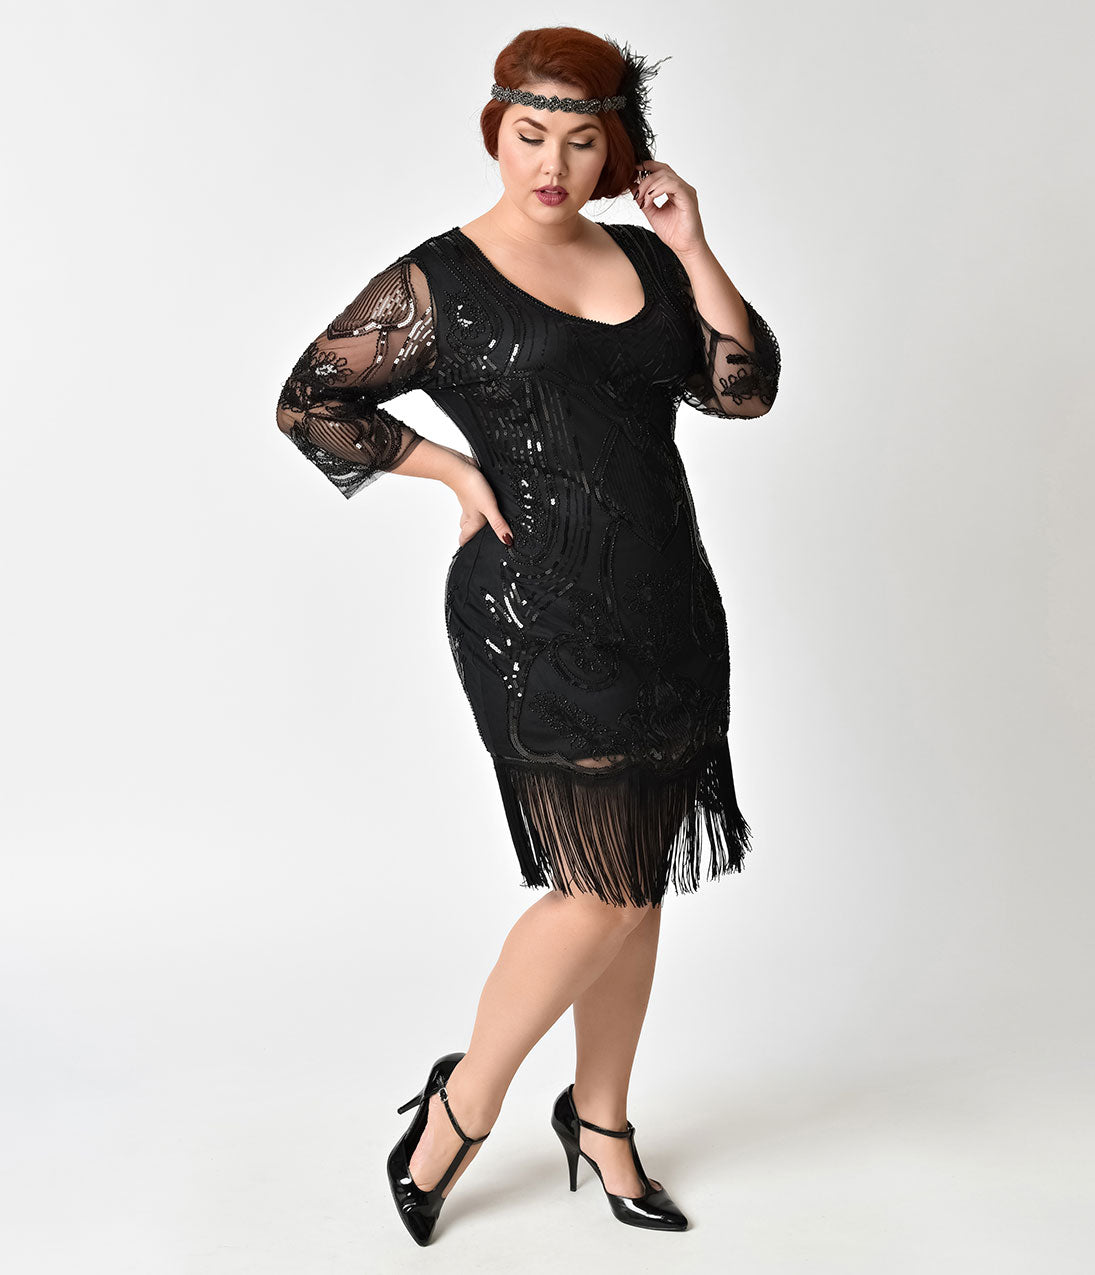 Unique Vintage Plus Size Black Beaded   Sequin Margaux Sleeved Fringe  Flapper Dress 48f9d4a8161d